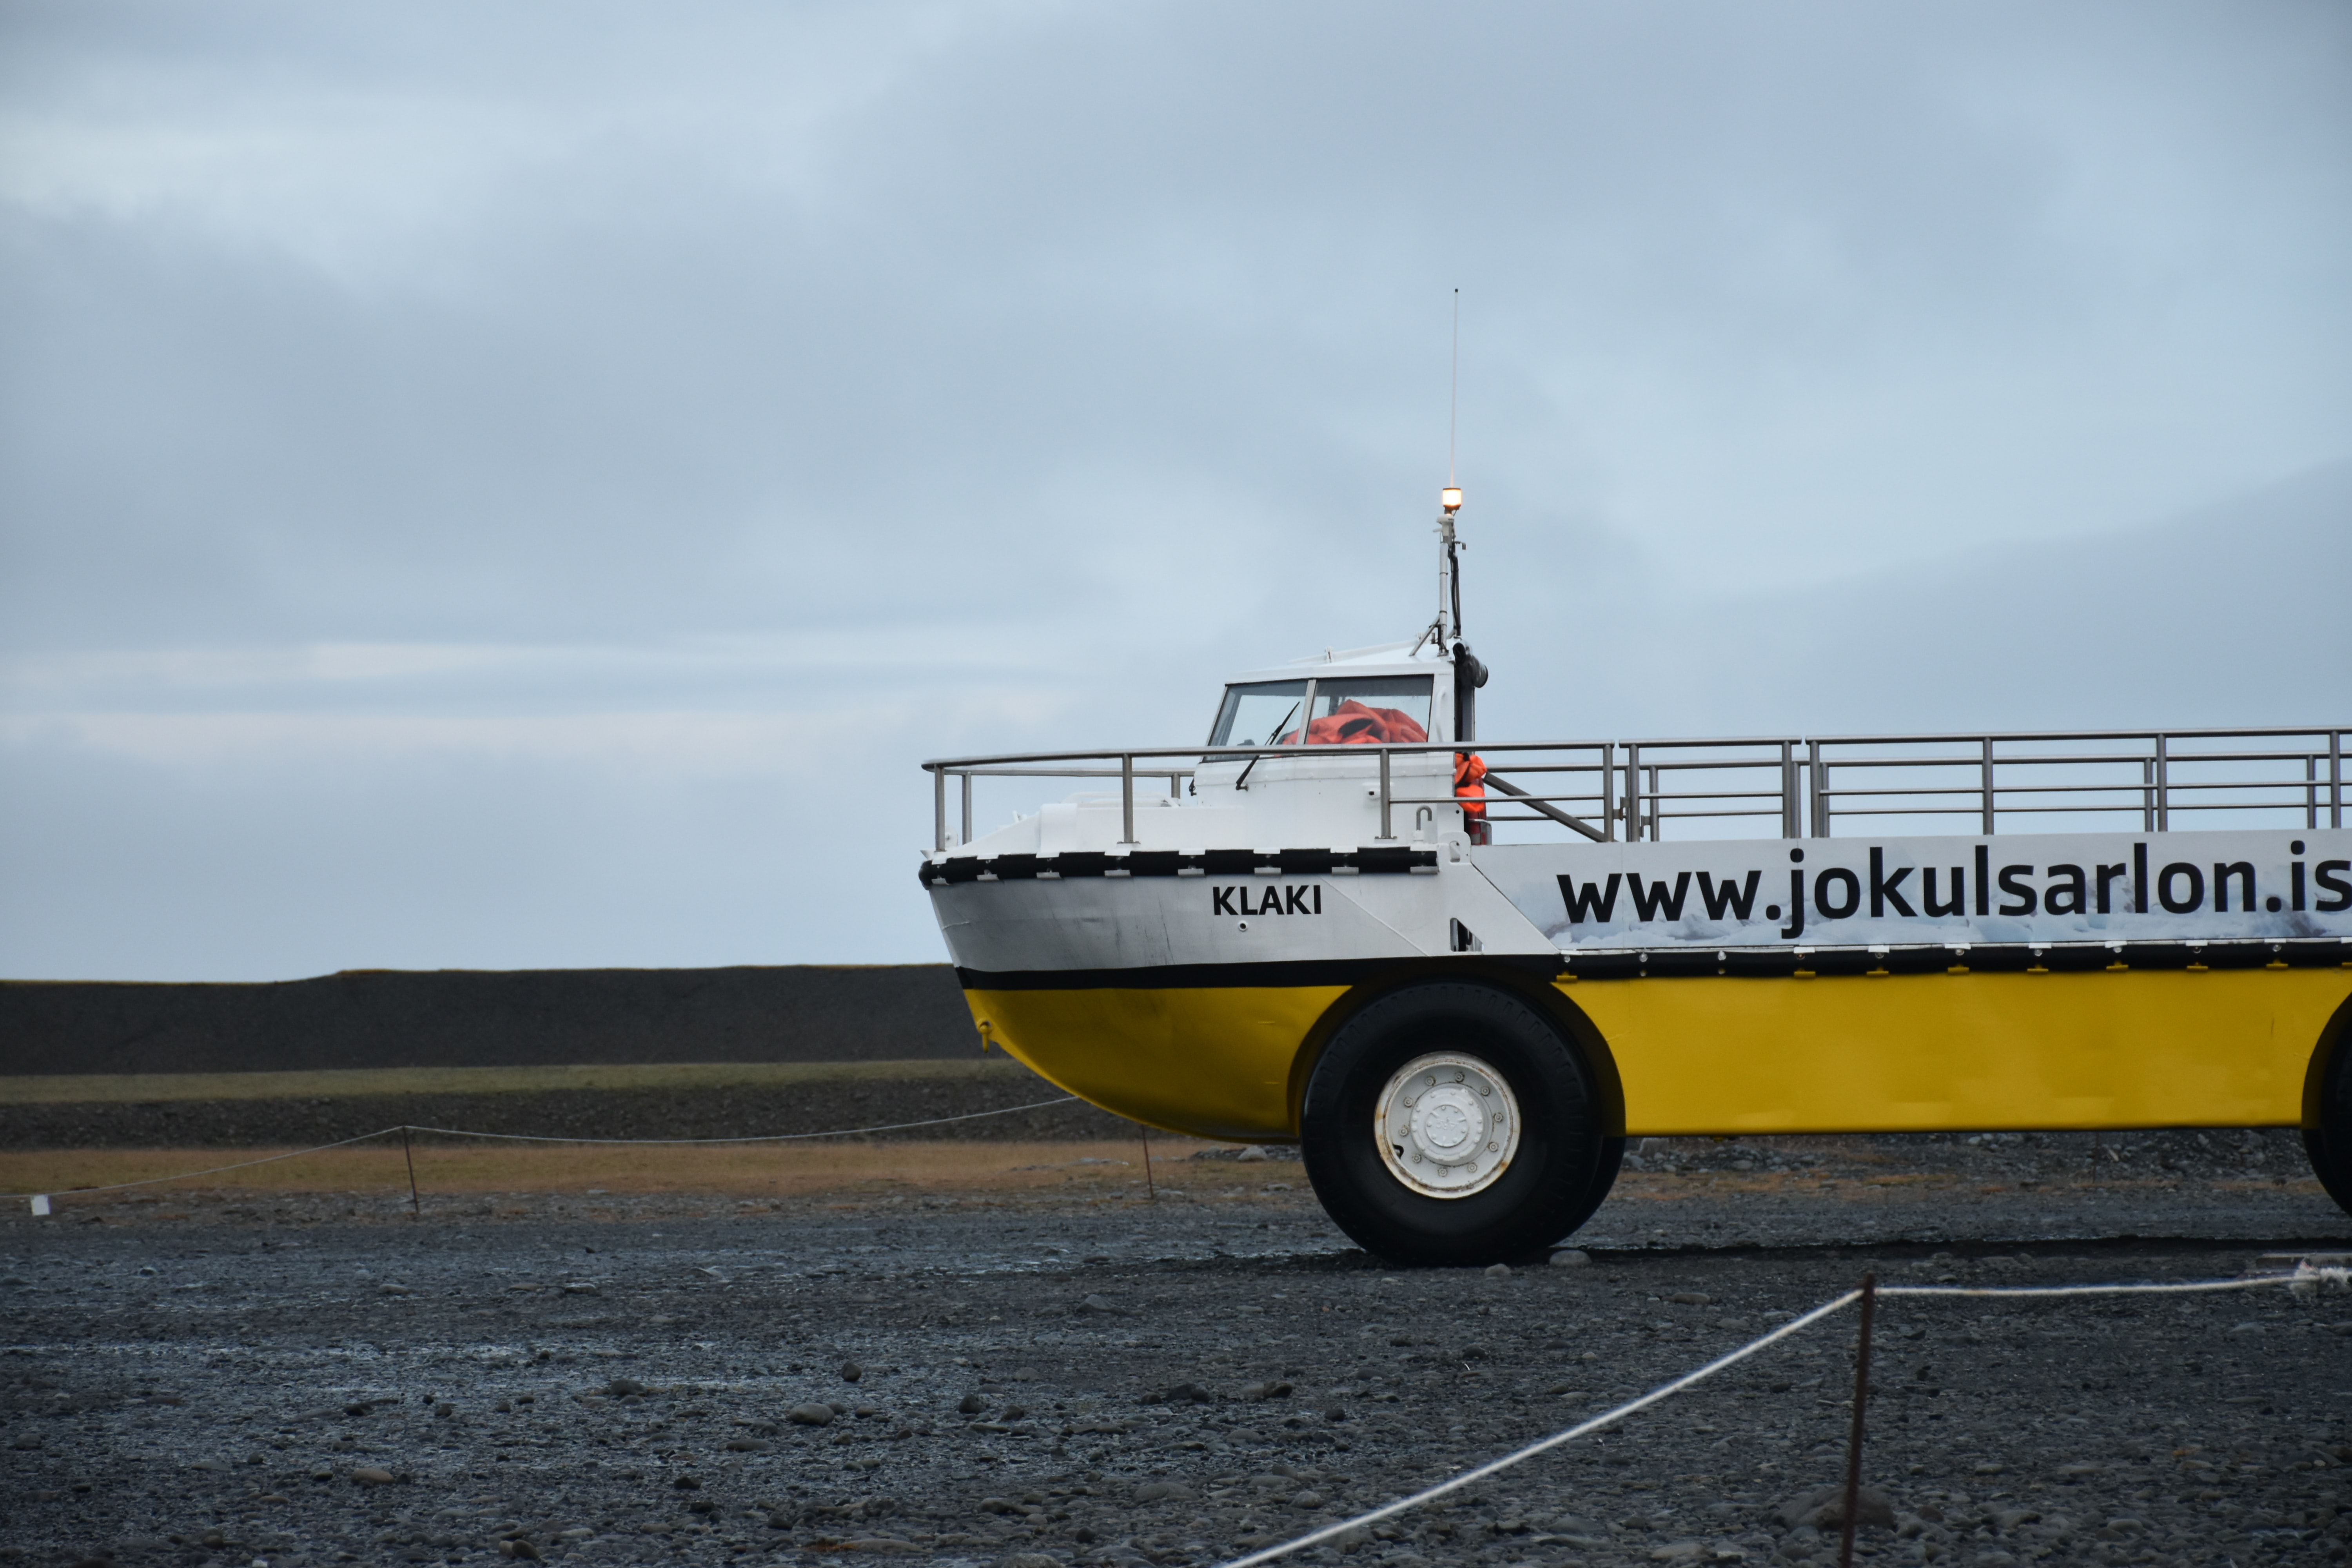 white and yellow ship vehicle at the field during day